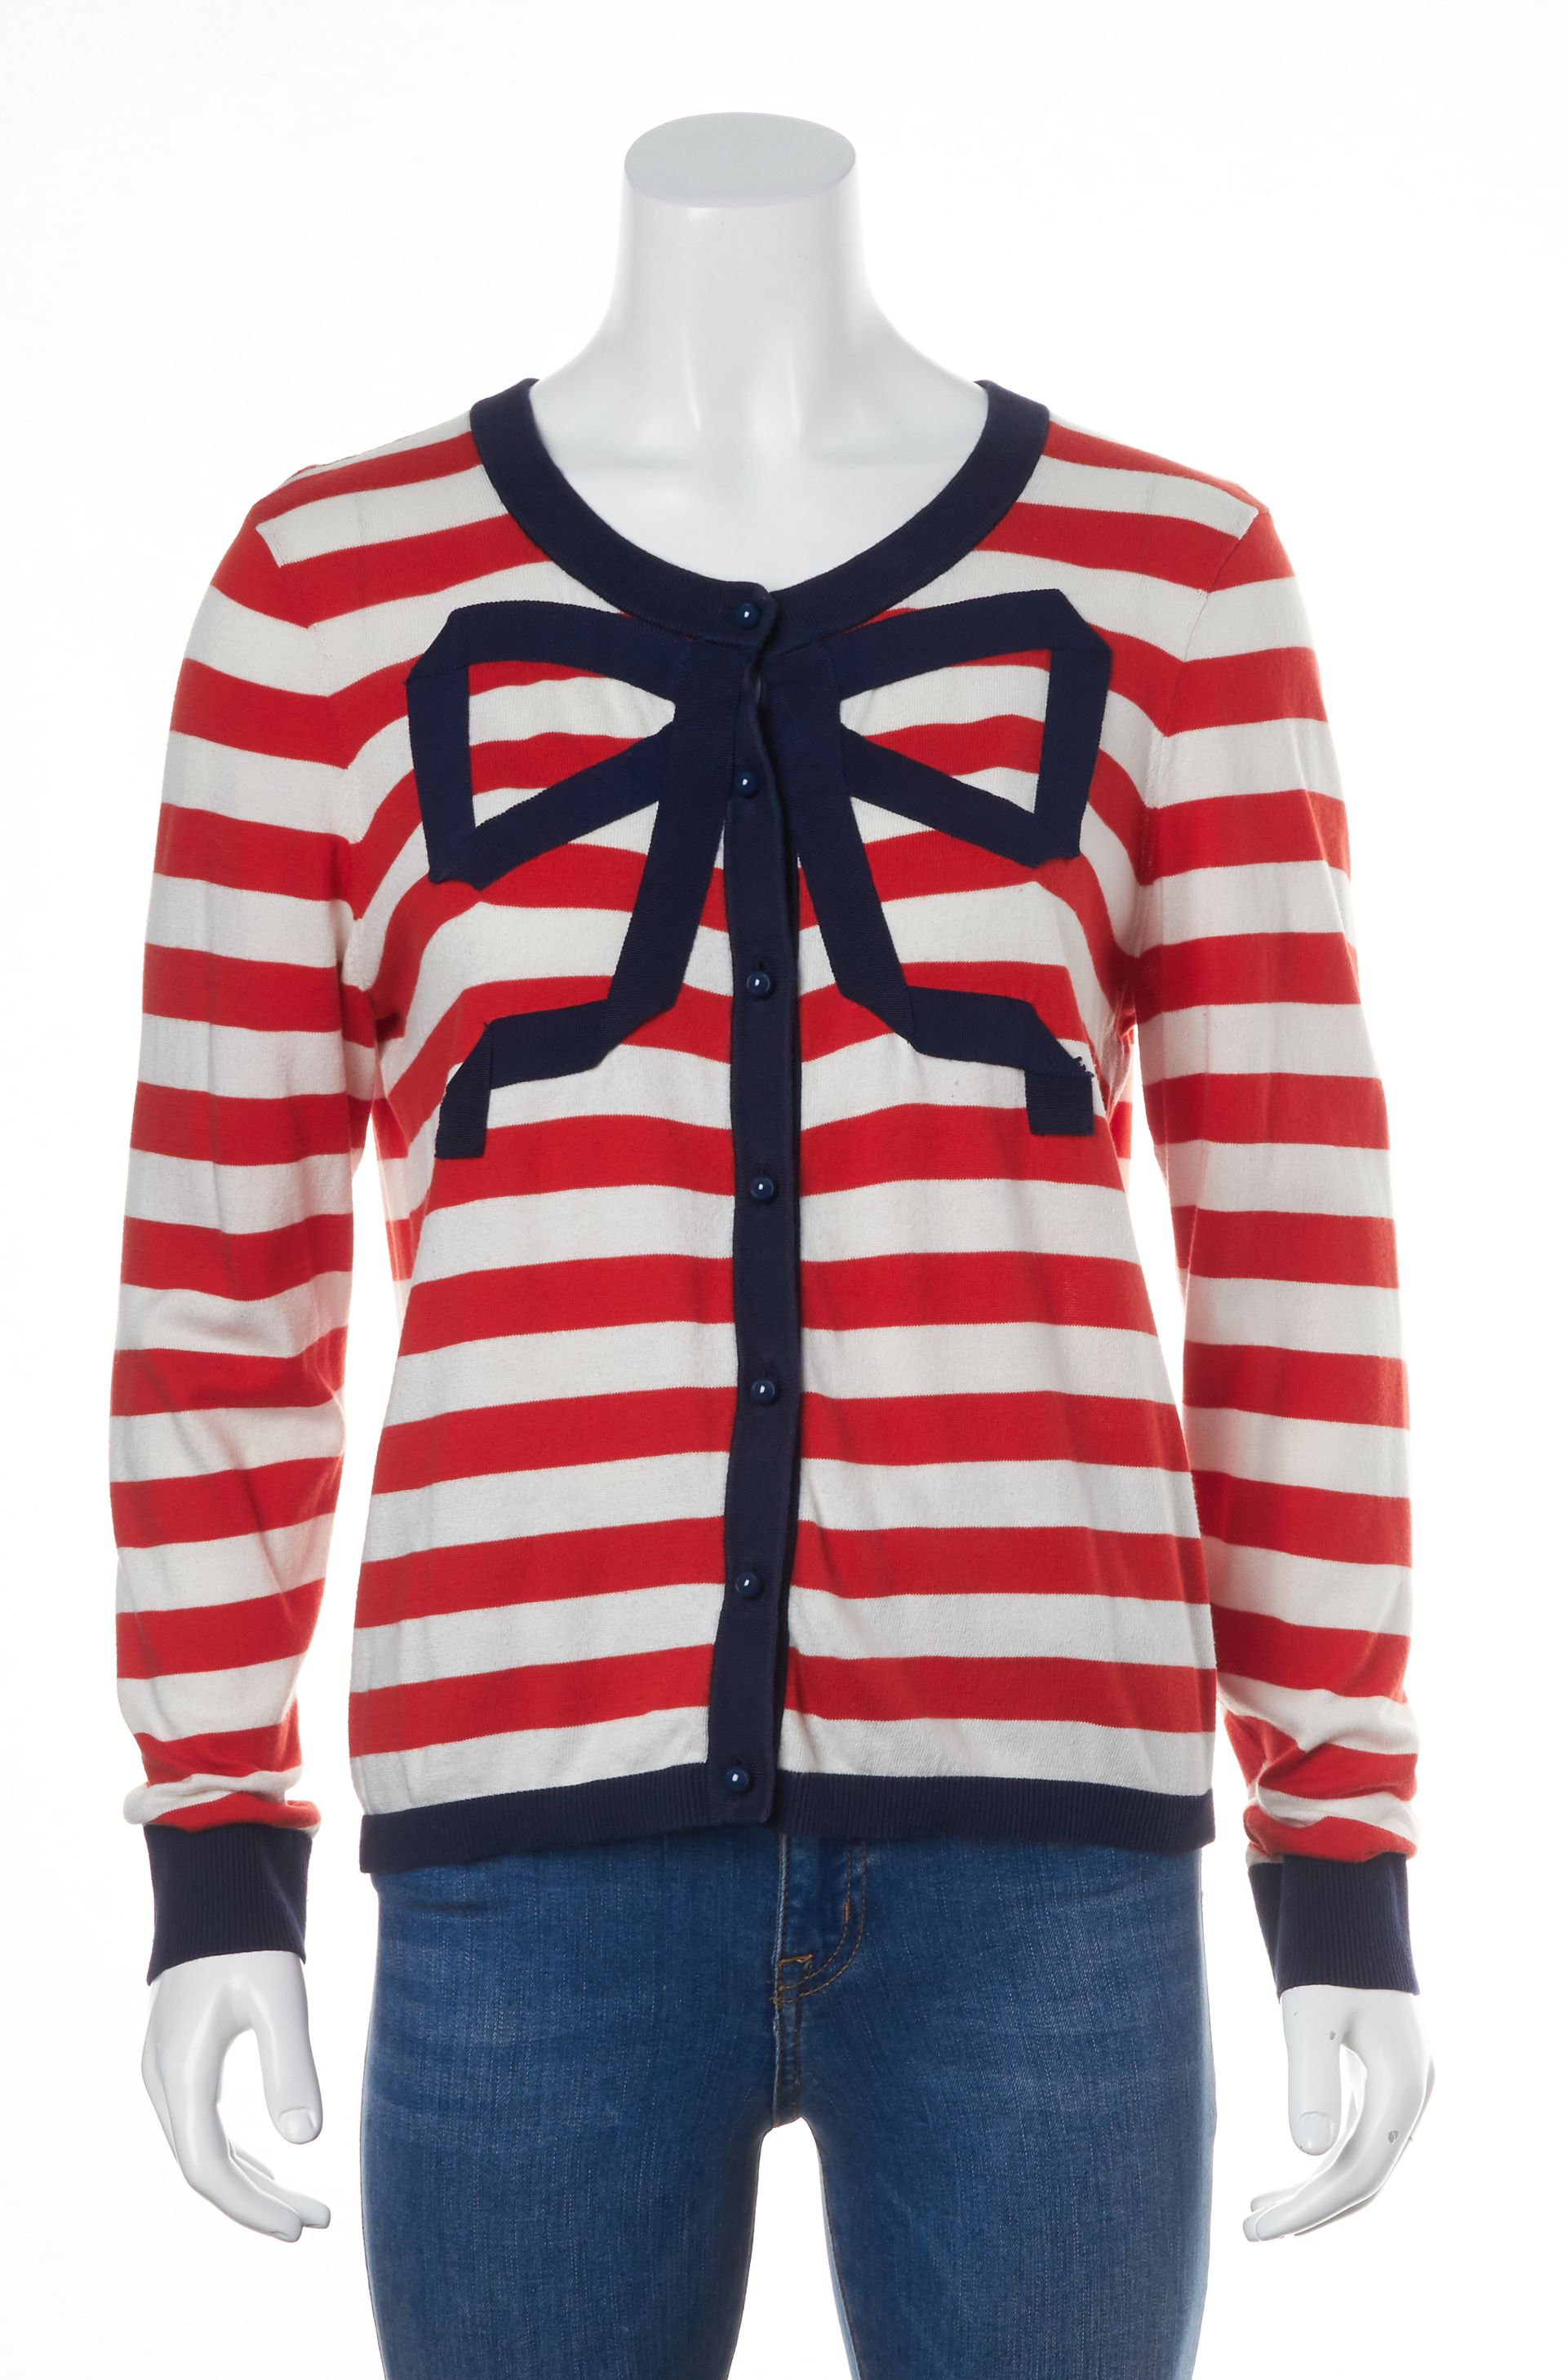 Kate Spade Red White Blue Striped Bow Long Sleeve Cardigan Sweater ...